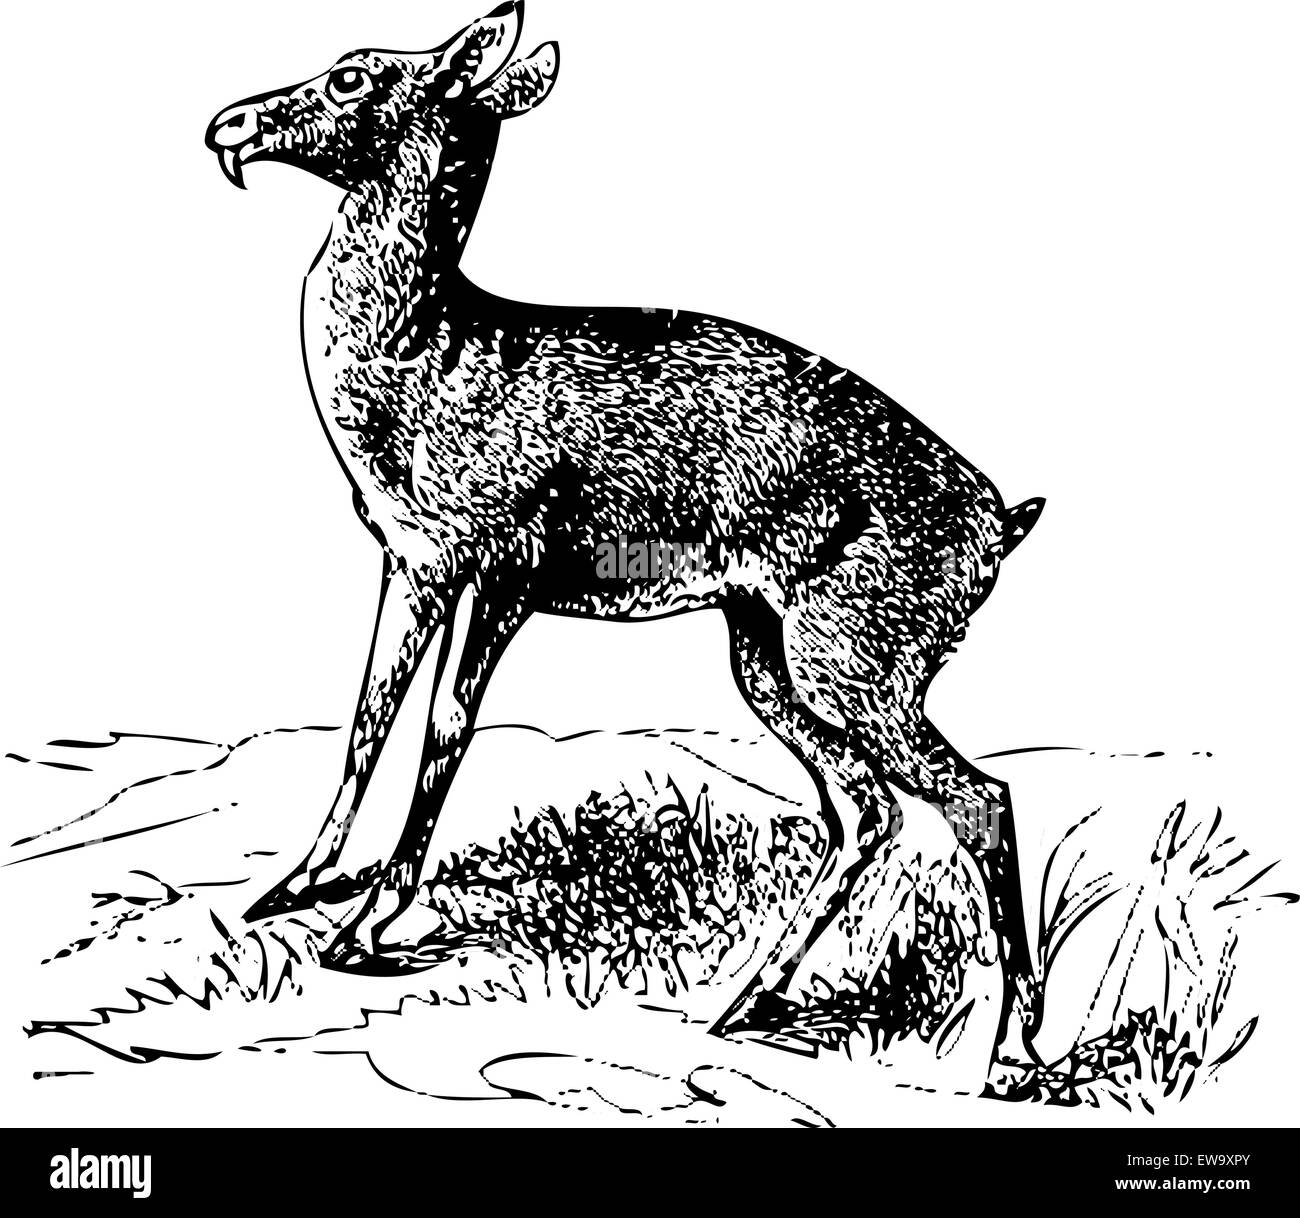 Old engraved illustration of a Siberian musk deer or moschus moschiferus, isolated on white. Live traced. From the - Stock Vector